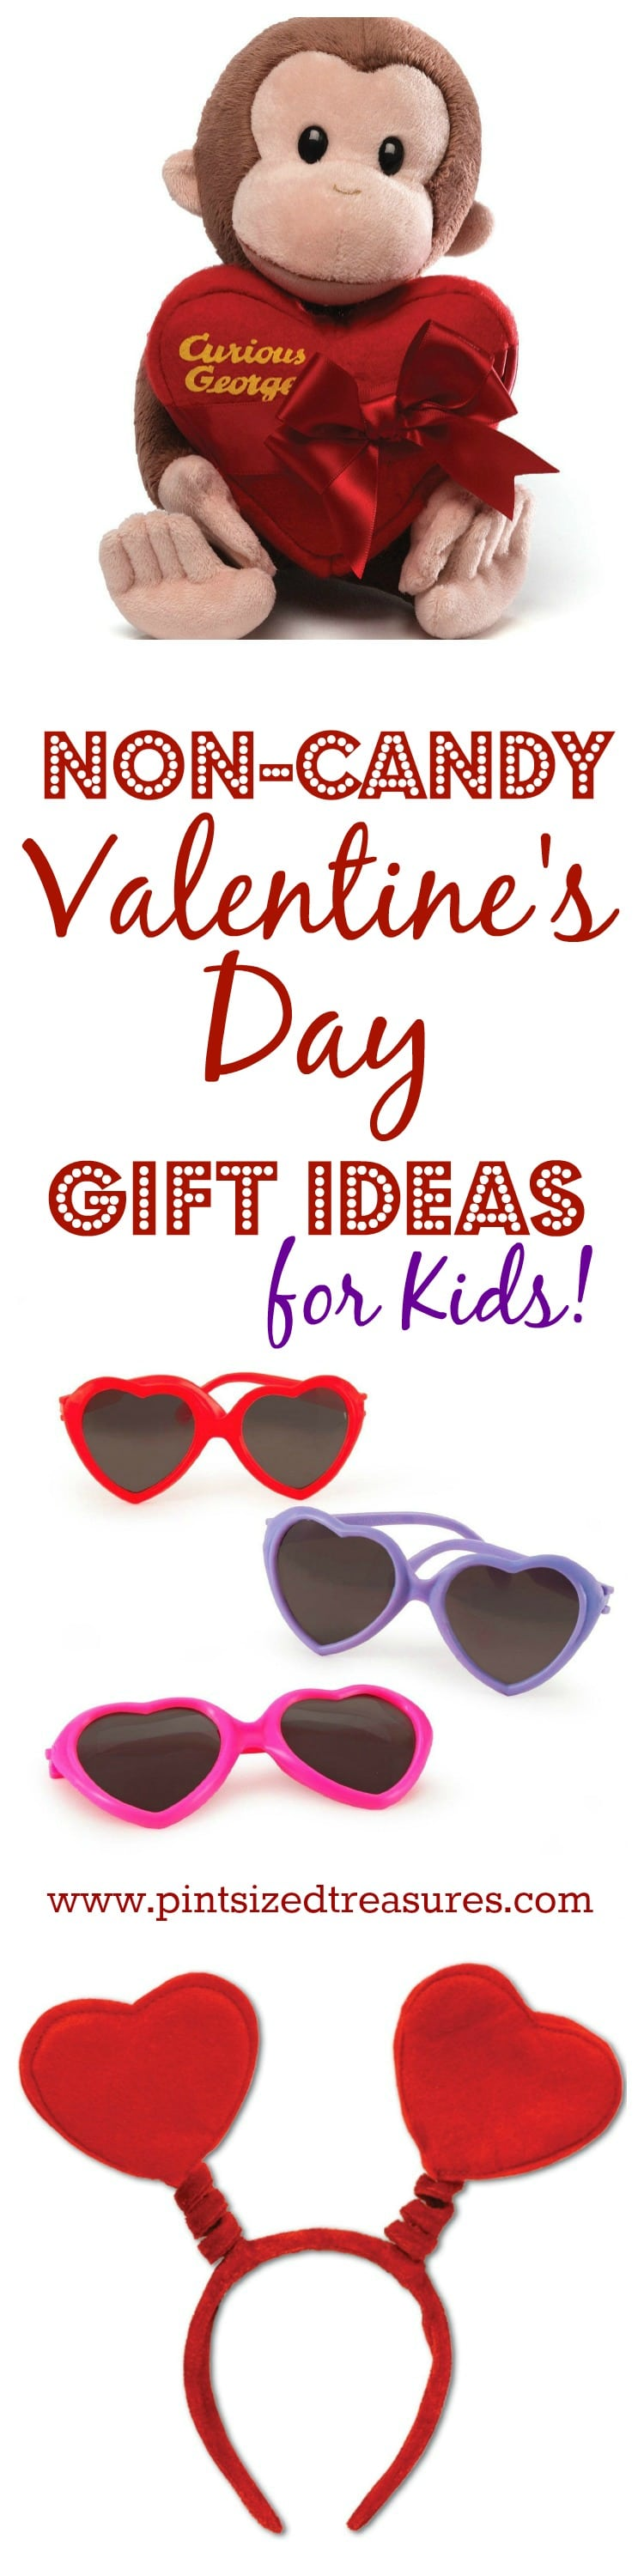 Valentine's Day gifts ideas for kids